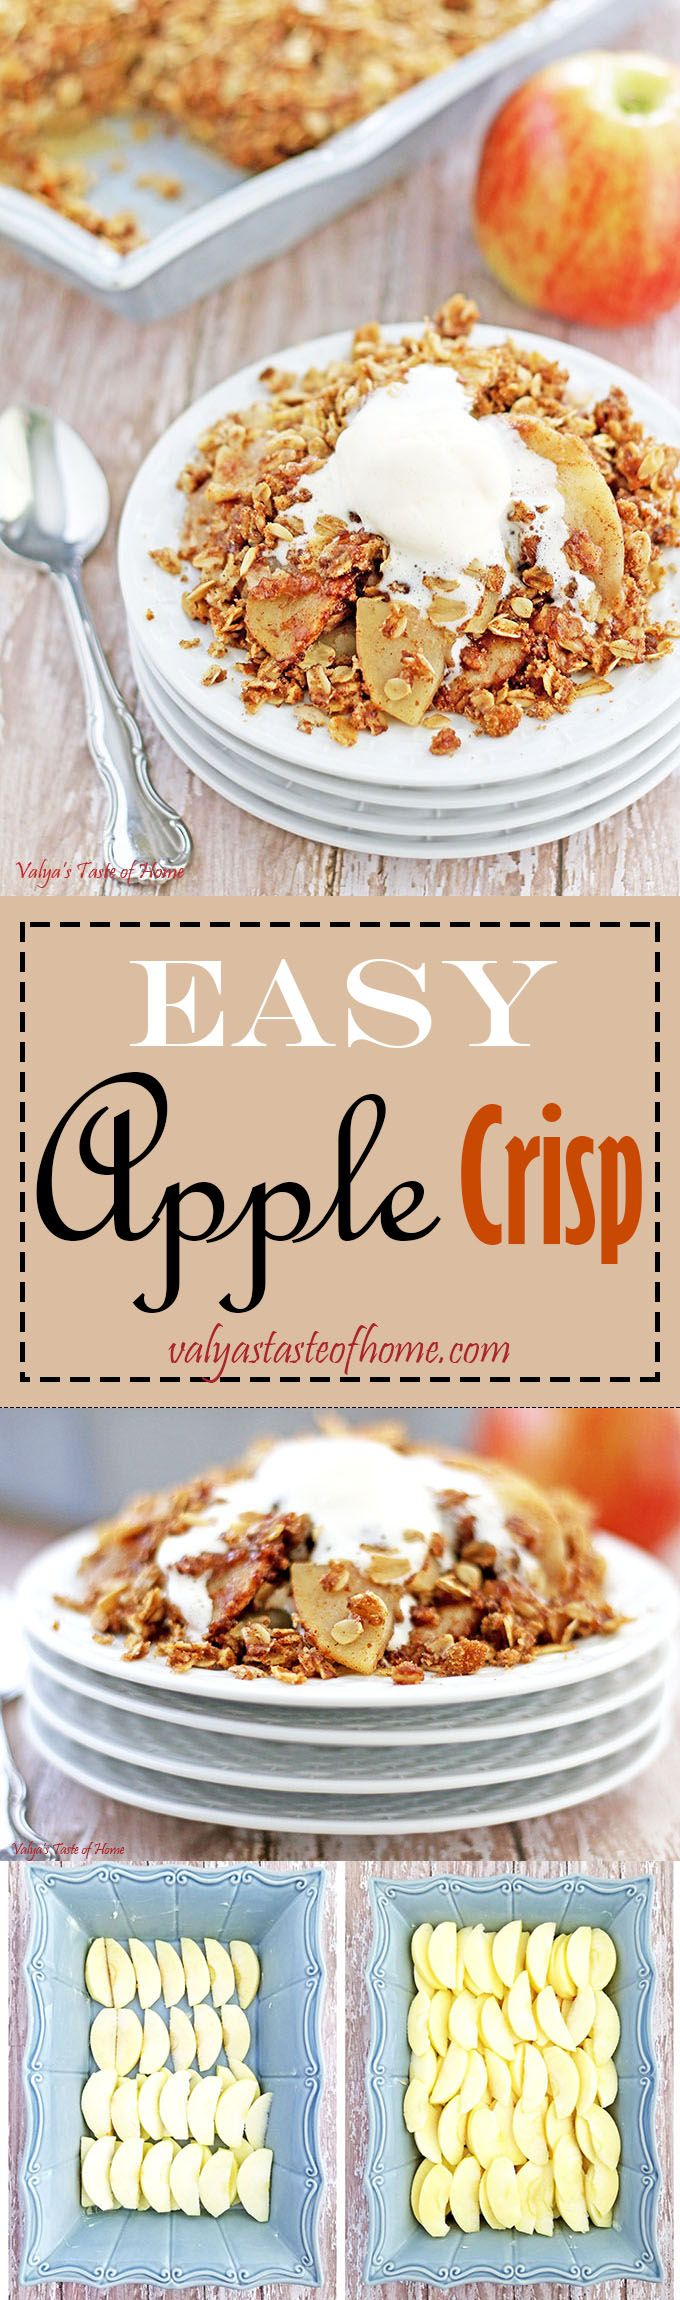 This apple crisp is very similar in taste to the original apple pie, only with so much less sugar and calories. Just as delicious, much less guilt.